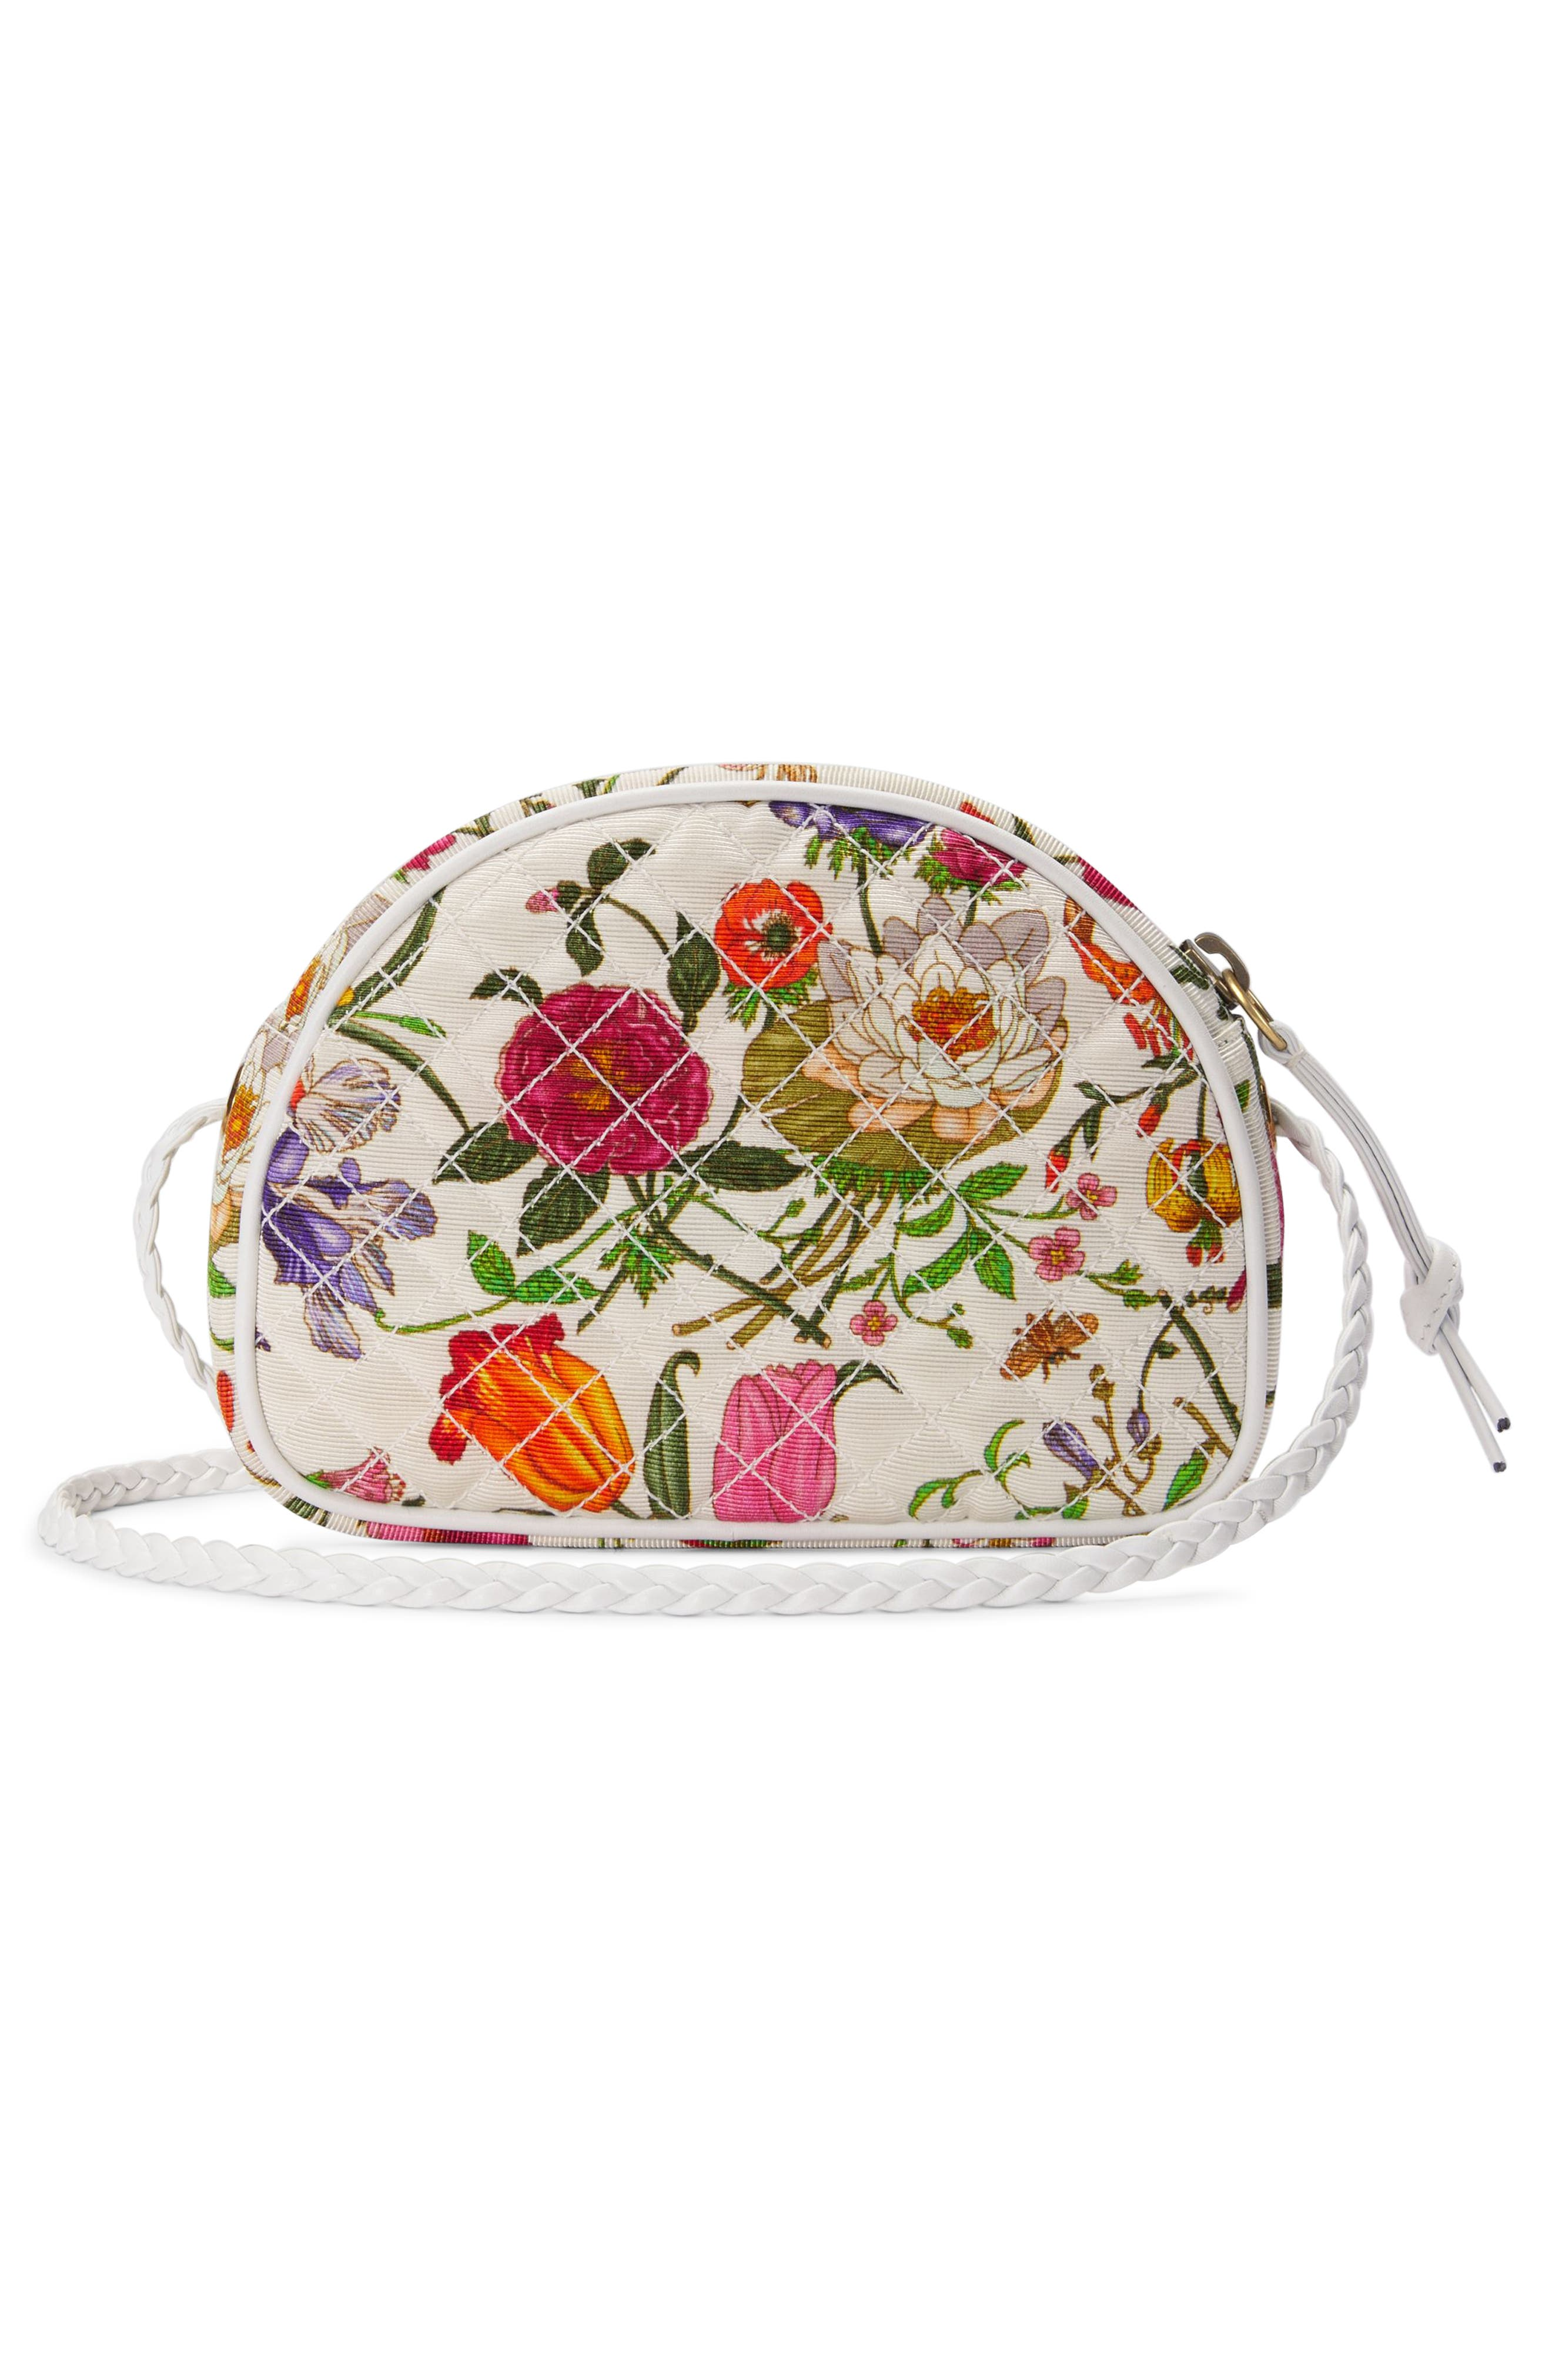 Quilted Floral Print Dome Crossbody Bag,                             Alternate thumbnail 2, color,                             WHITE MULTI